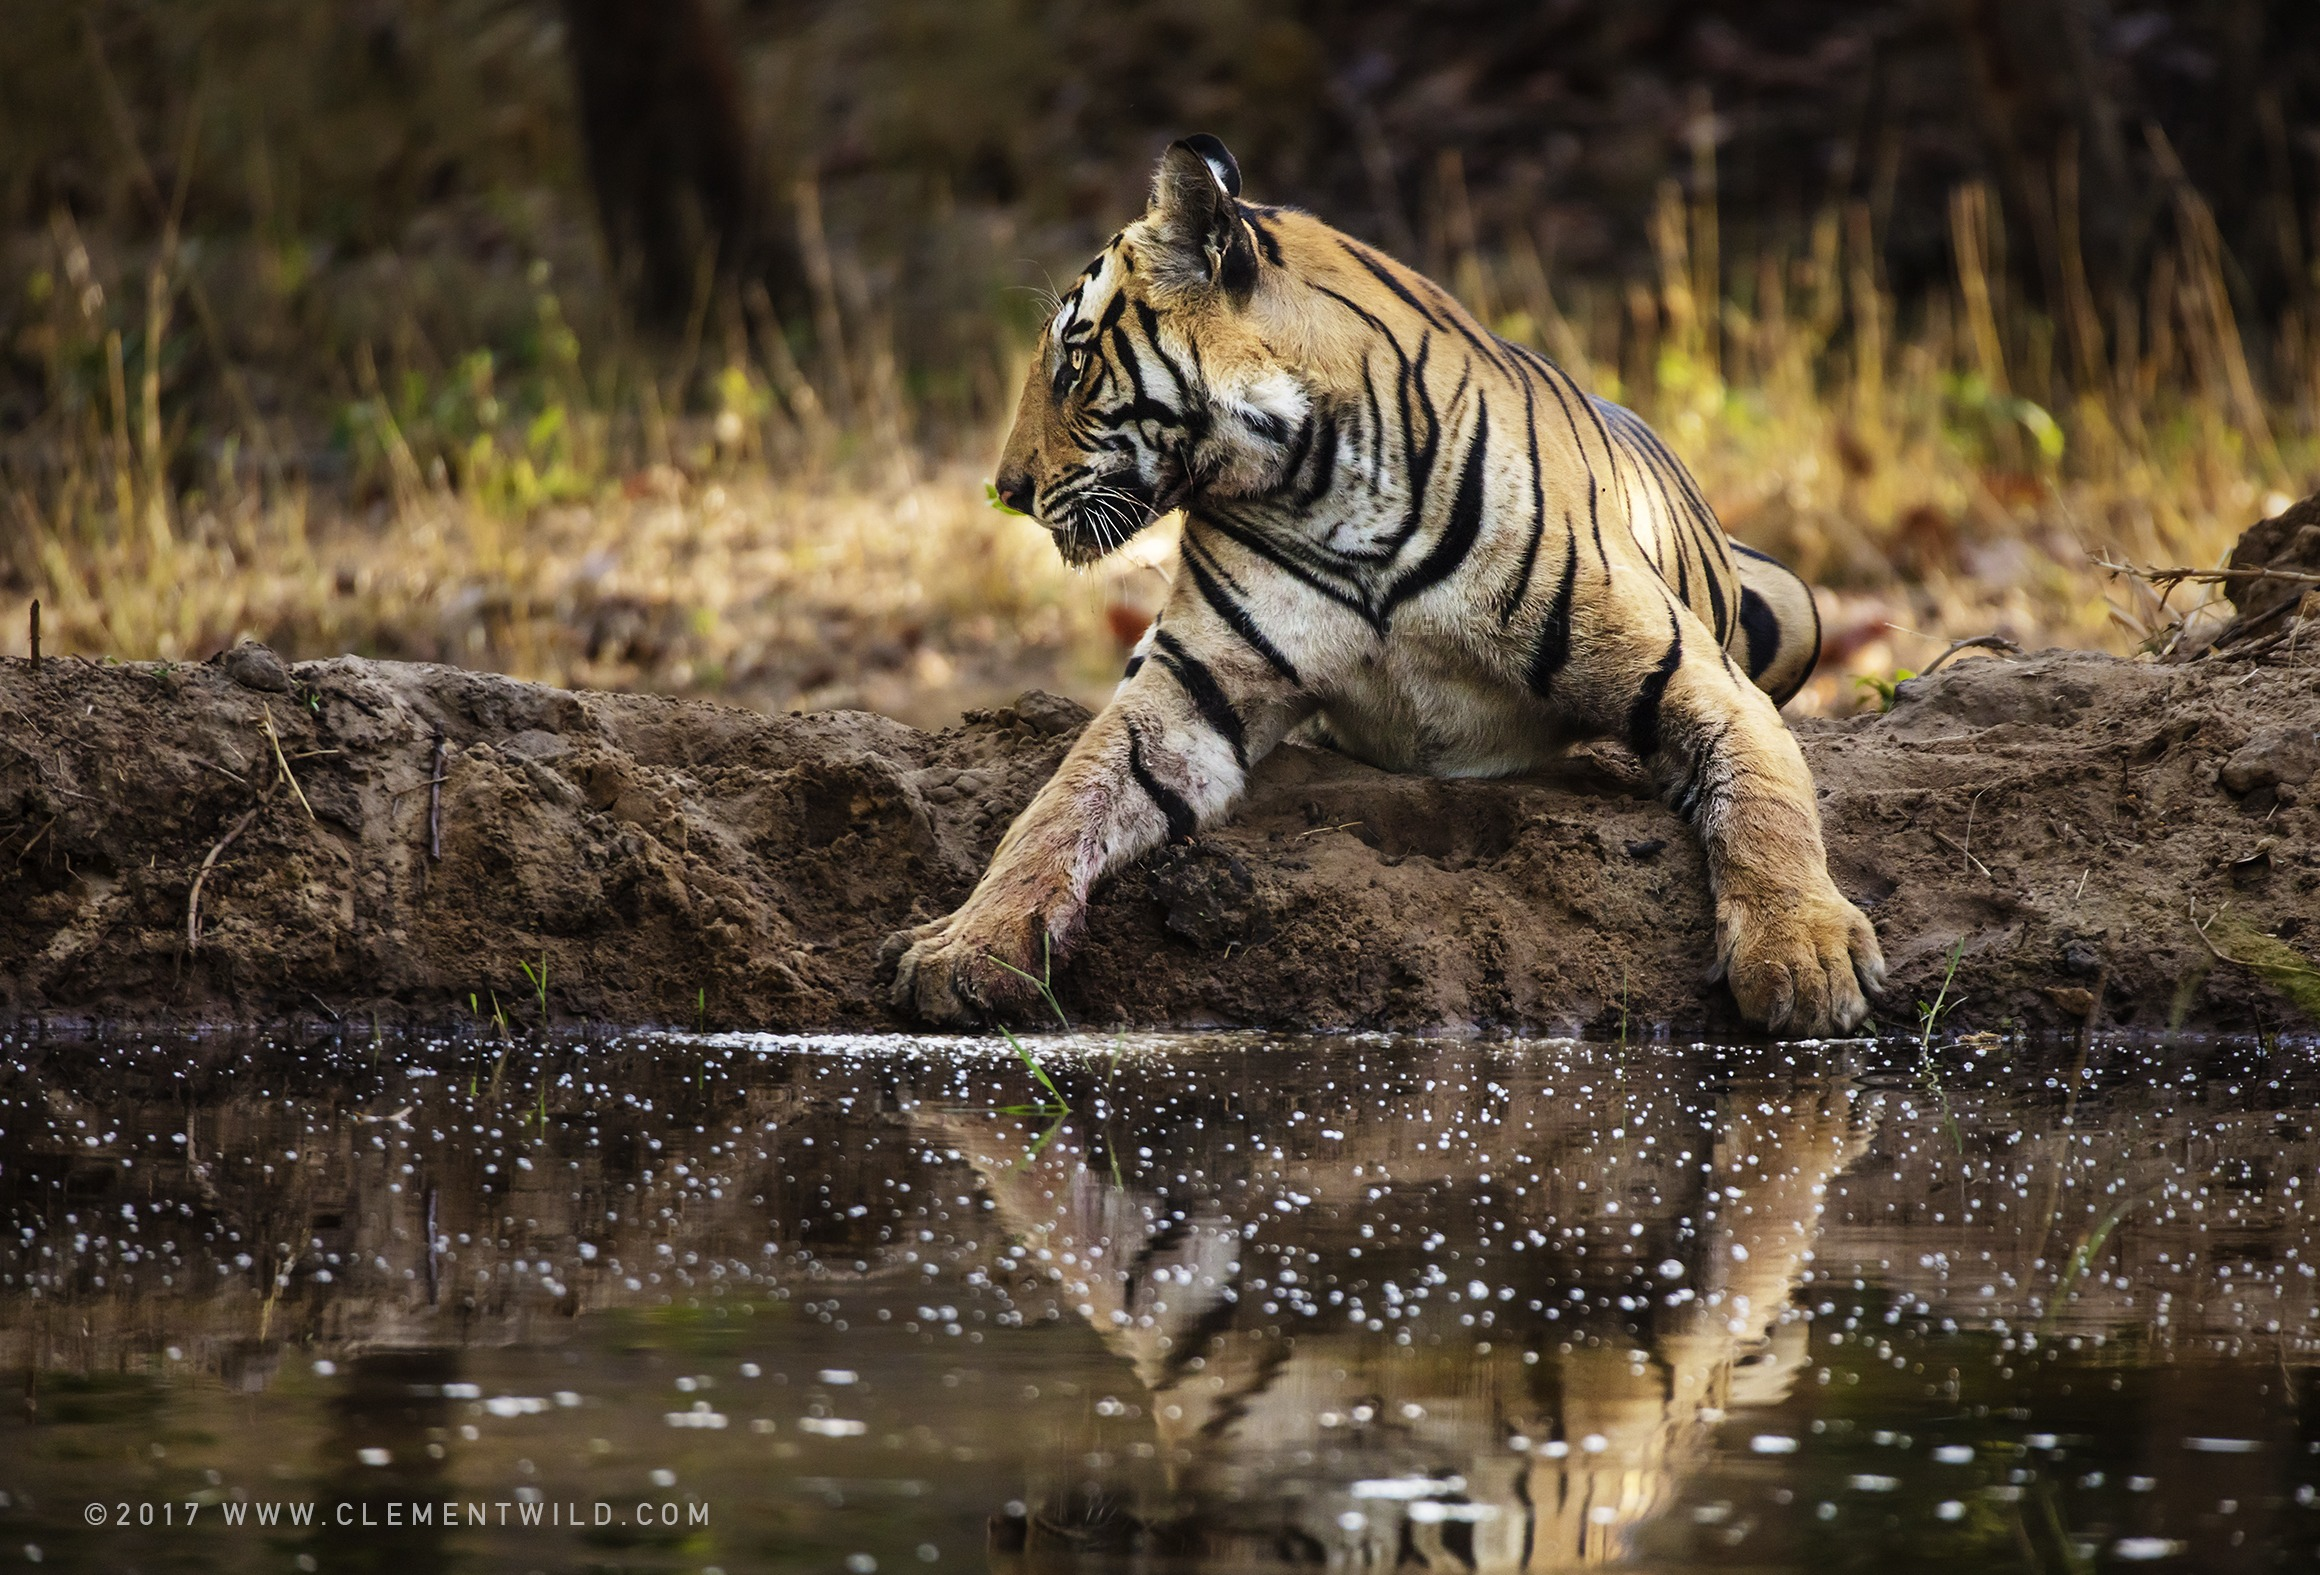 Tiger reflection in Bandhavgarh National Park India as captured by wildlife photographer ClementWild on his photo safari